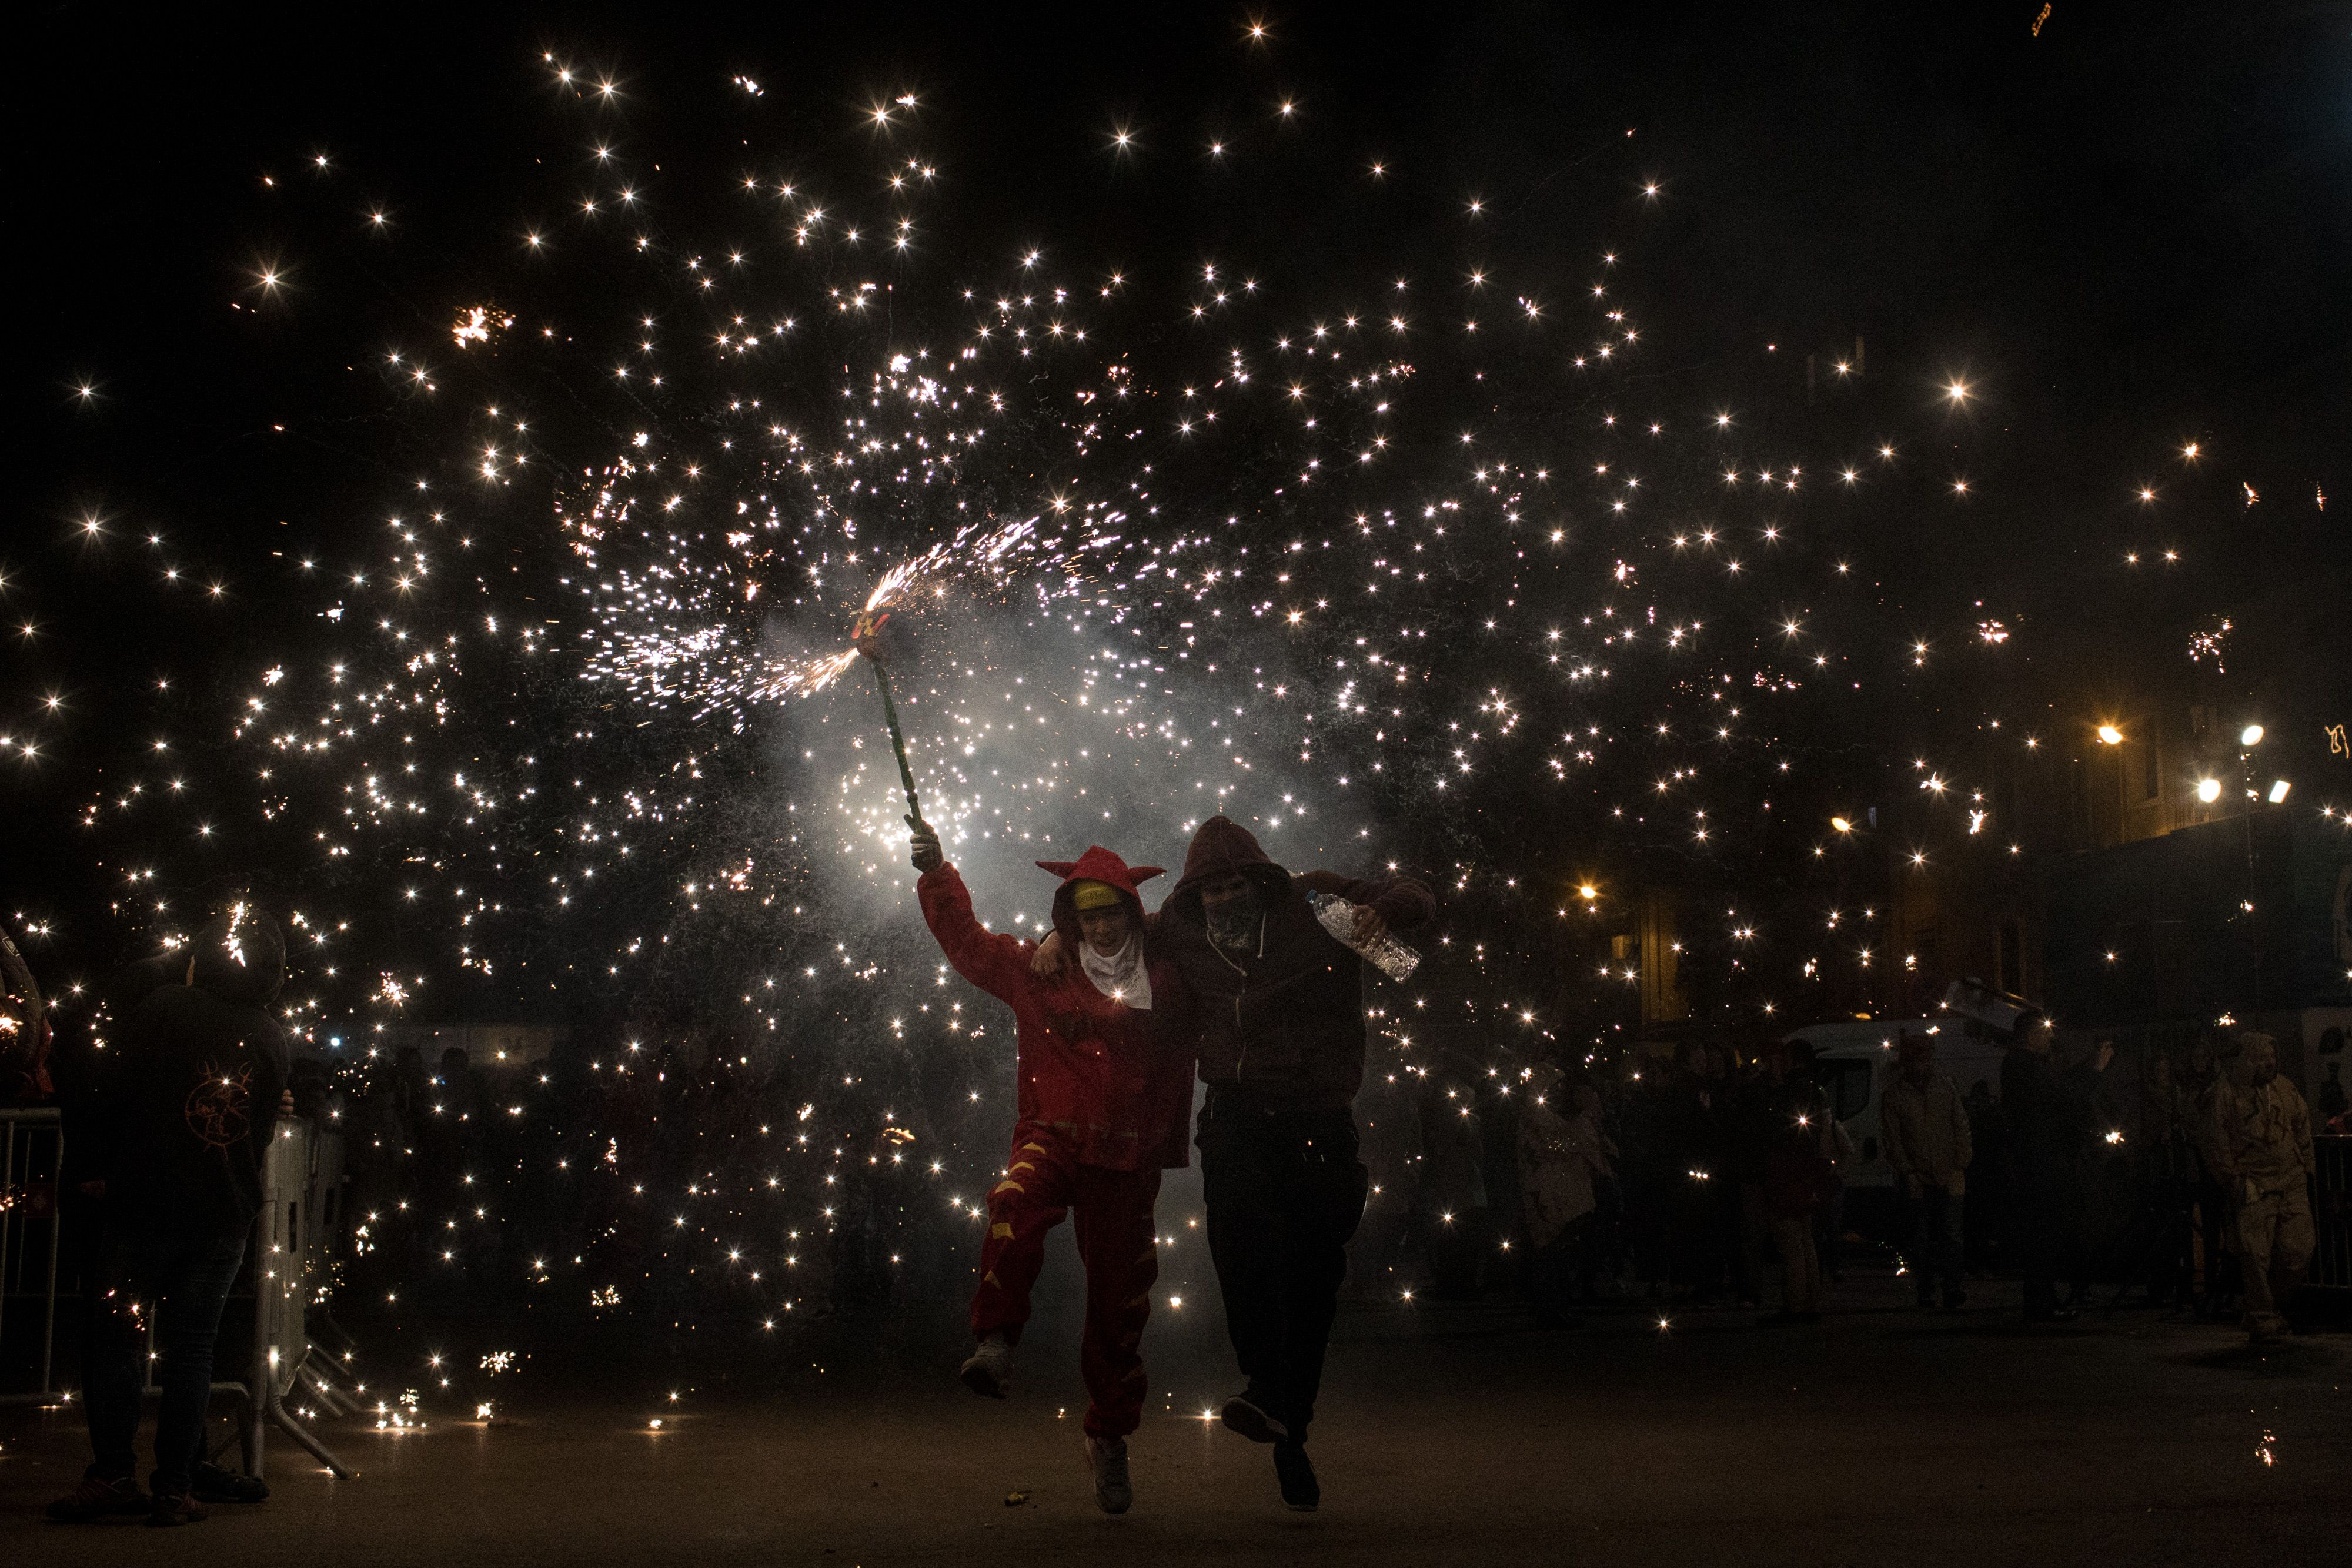 Two kids playing with sparklers on the Day of Innocents in Barcelona